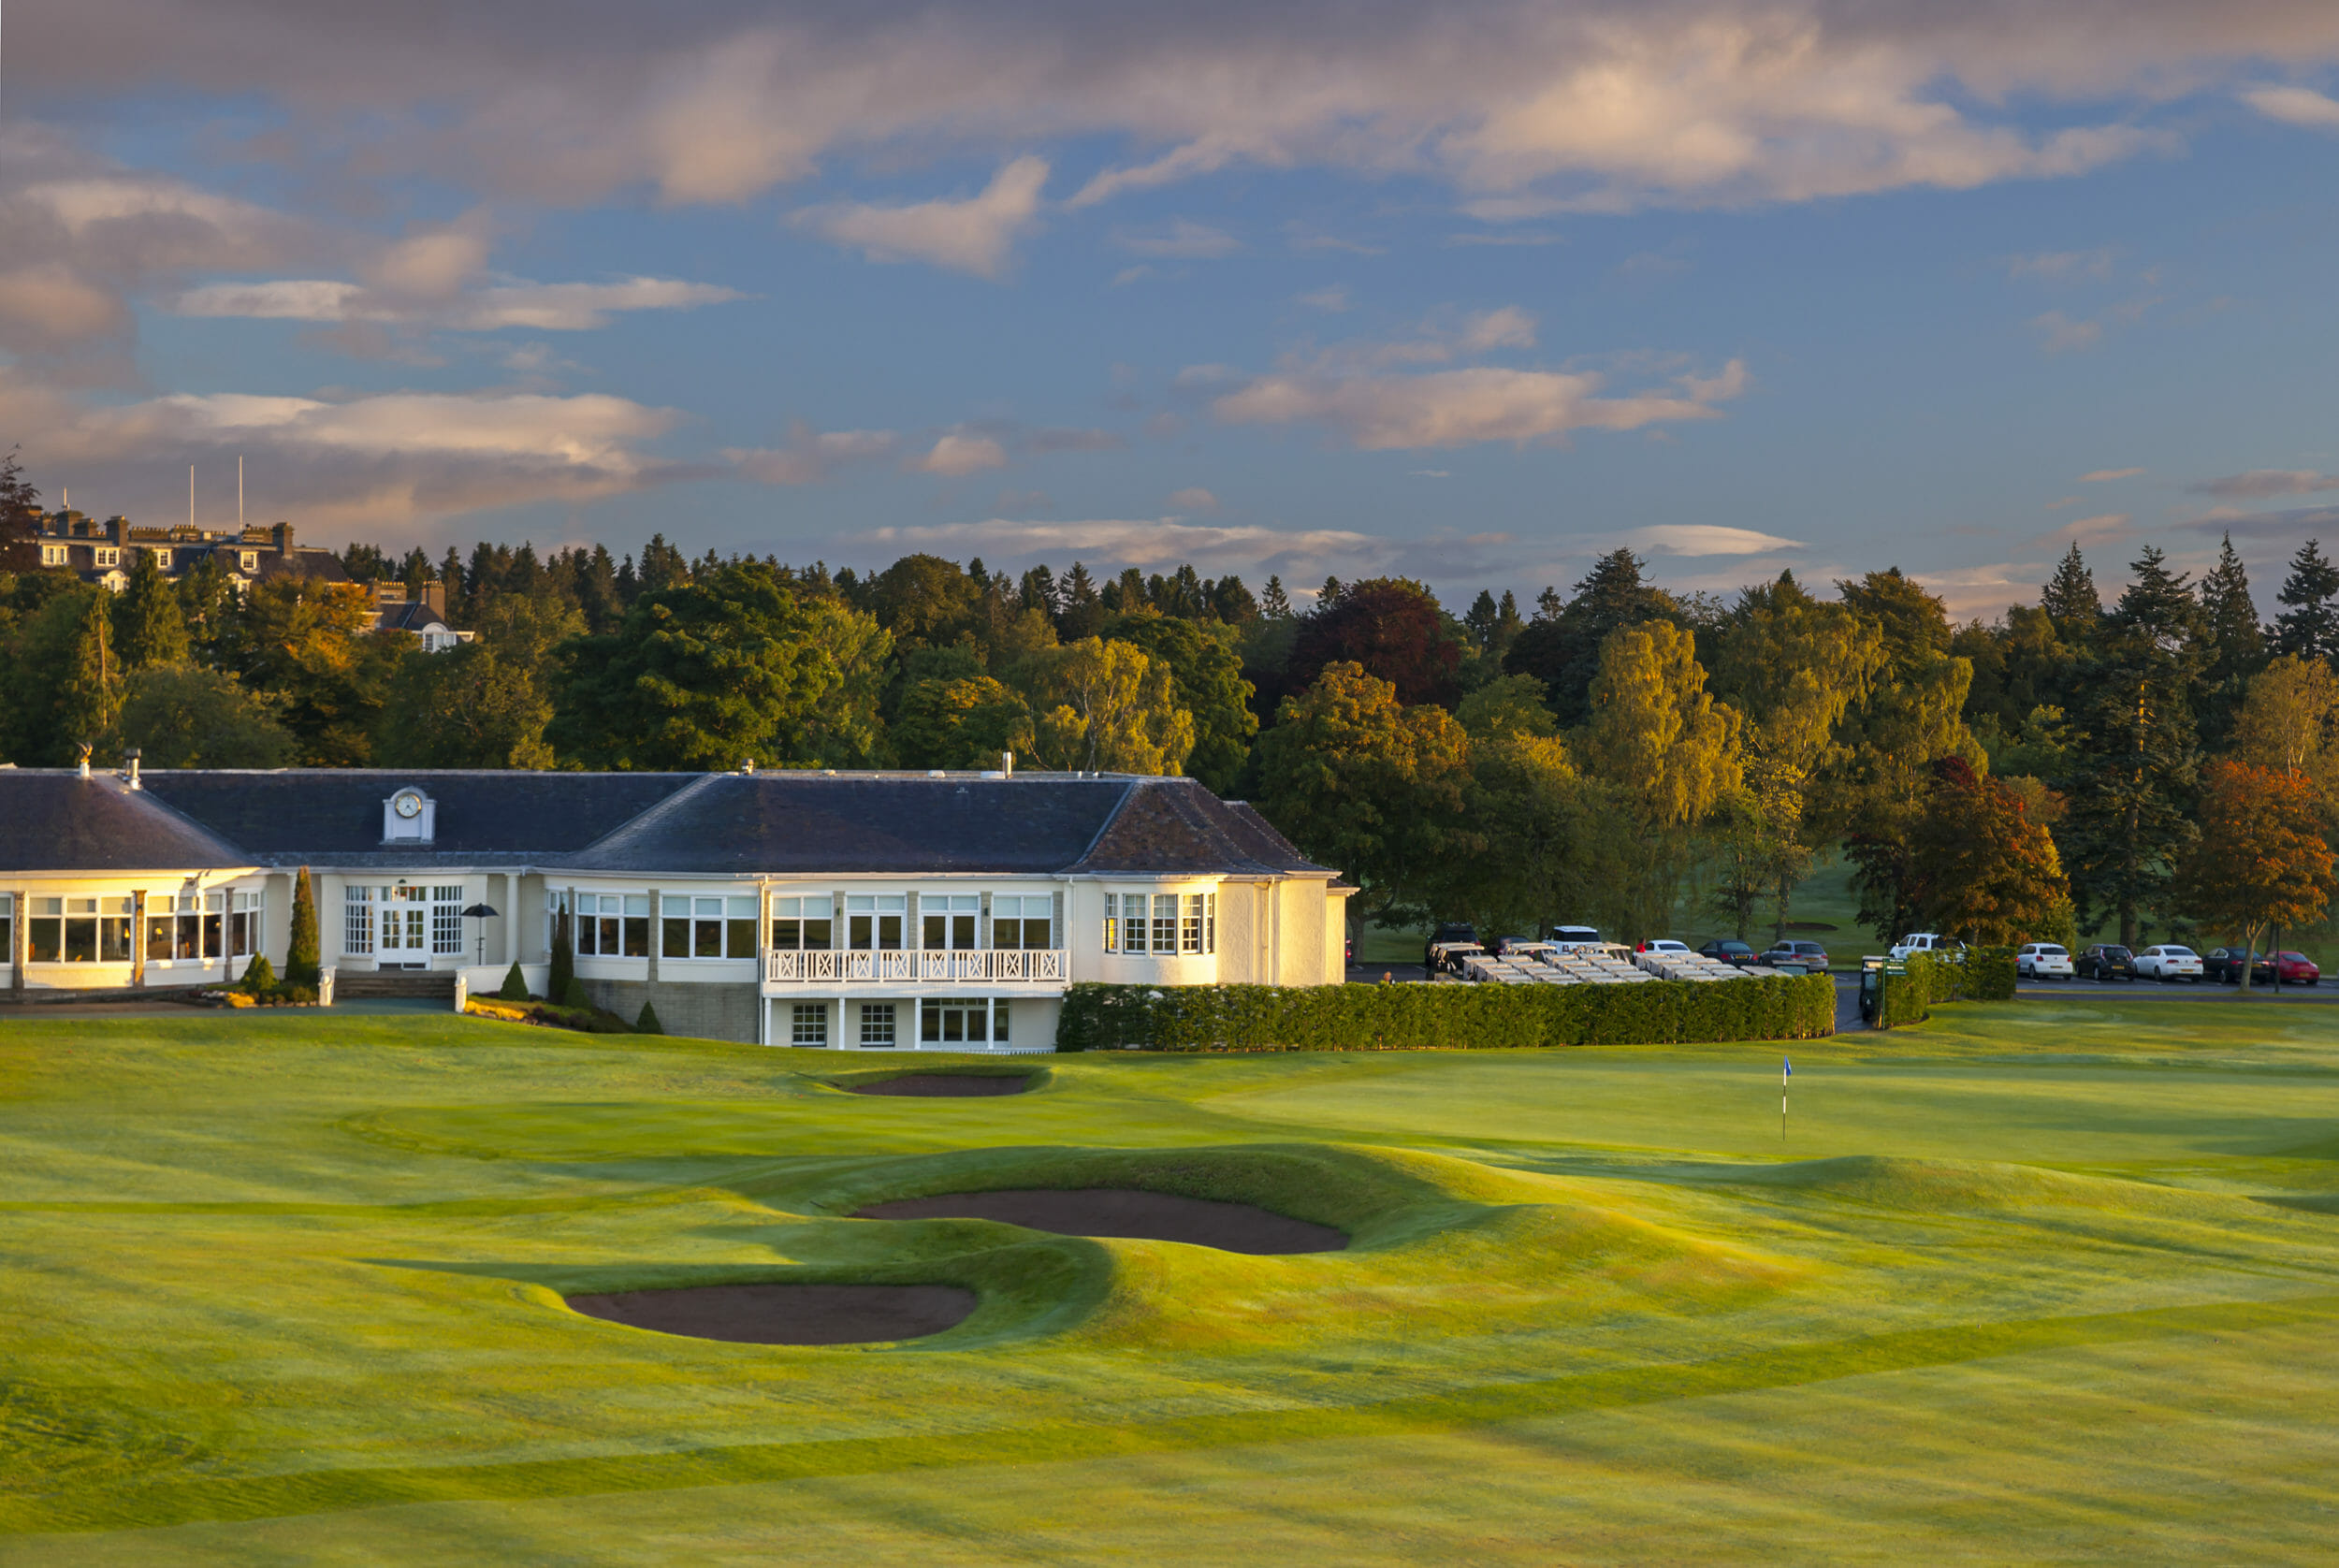 External view of the clubhouse and adjacent Queens Golf Course